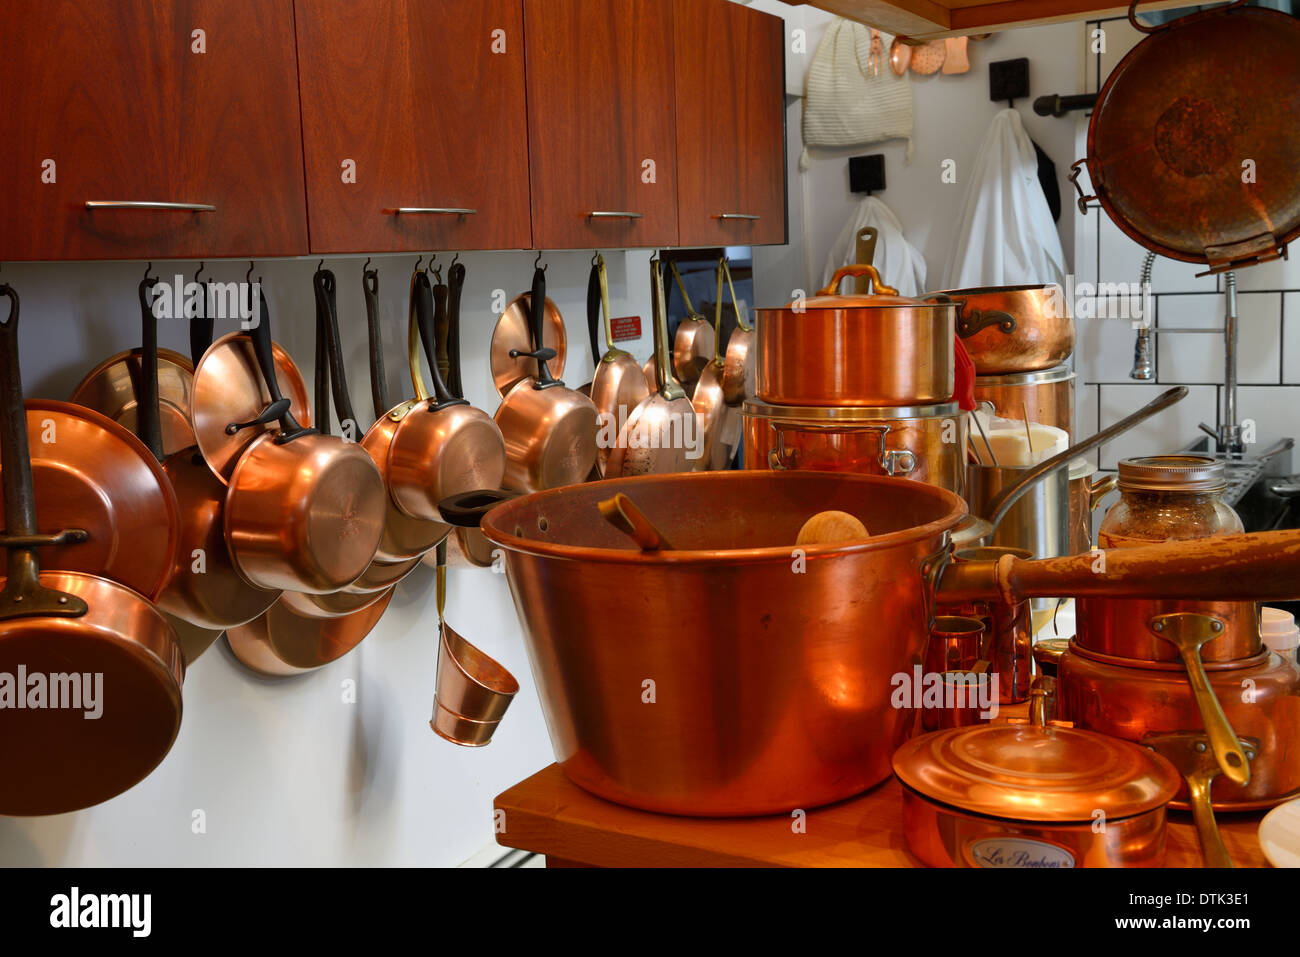 Copper pots and pans in a professional gourmet kitchen - Stock Image